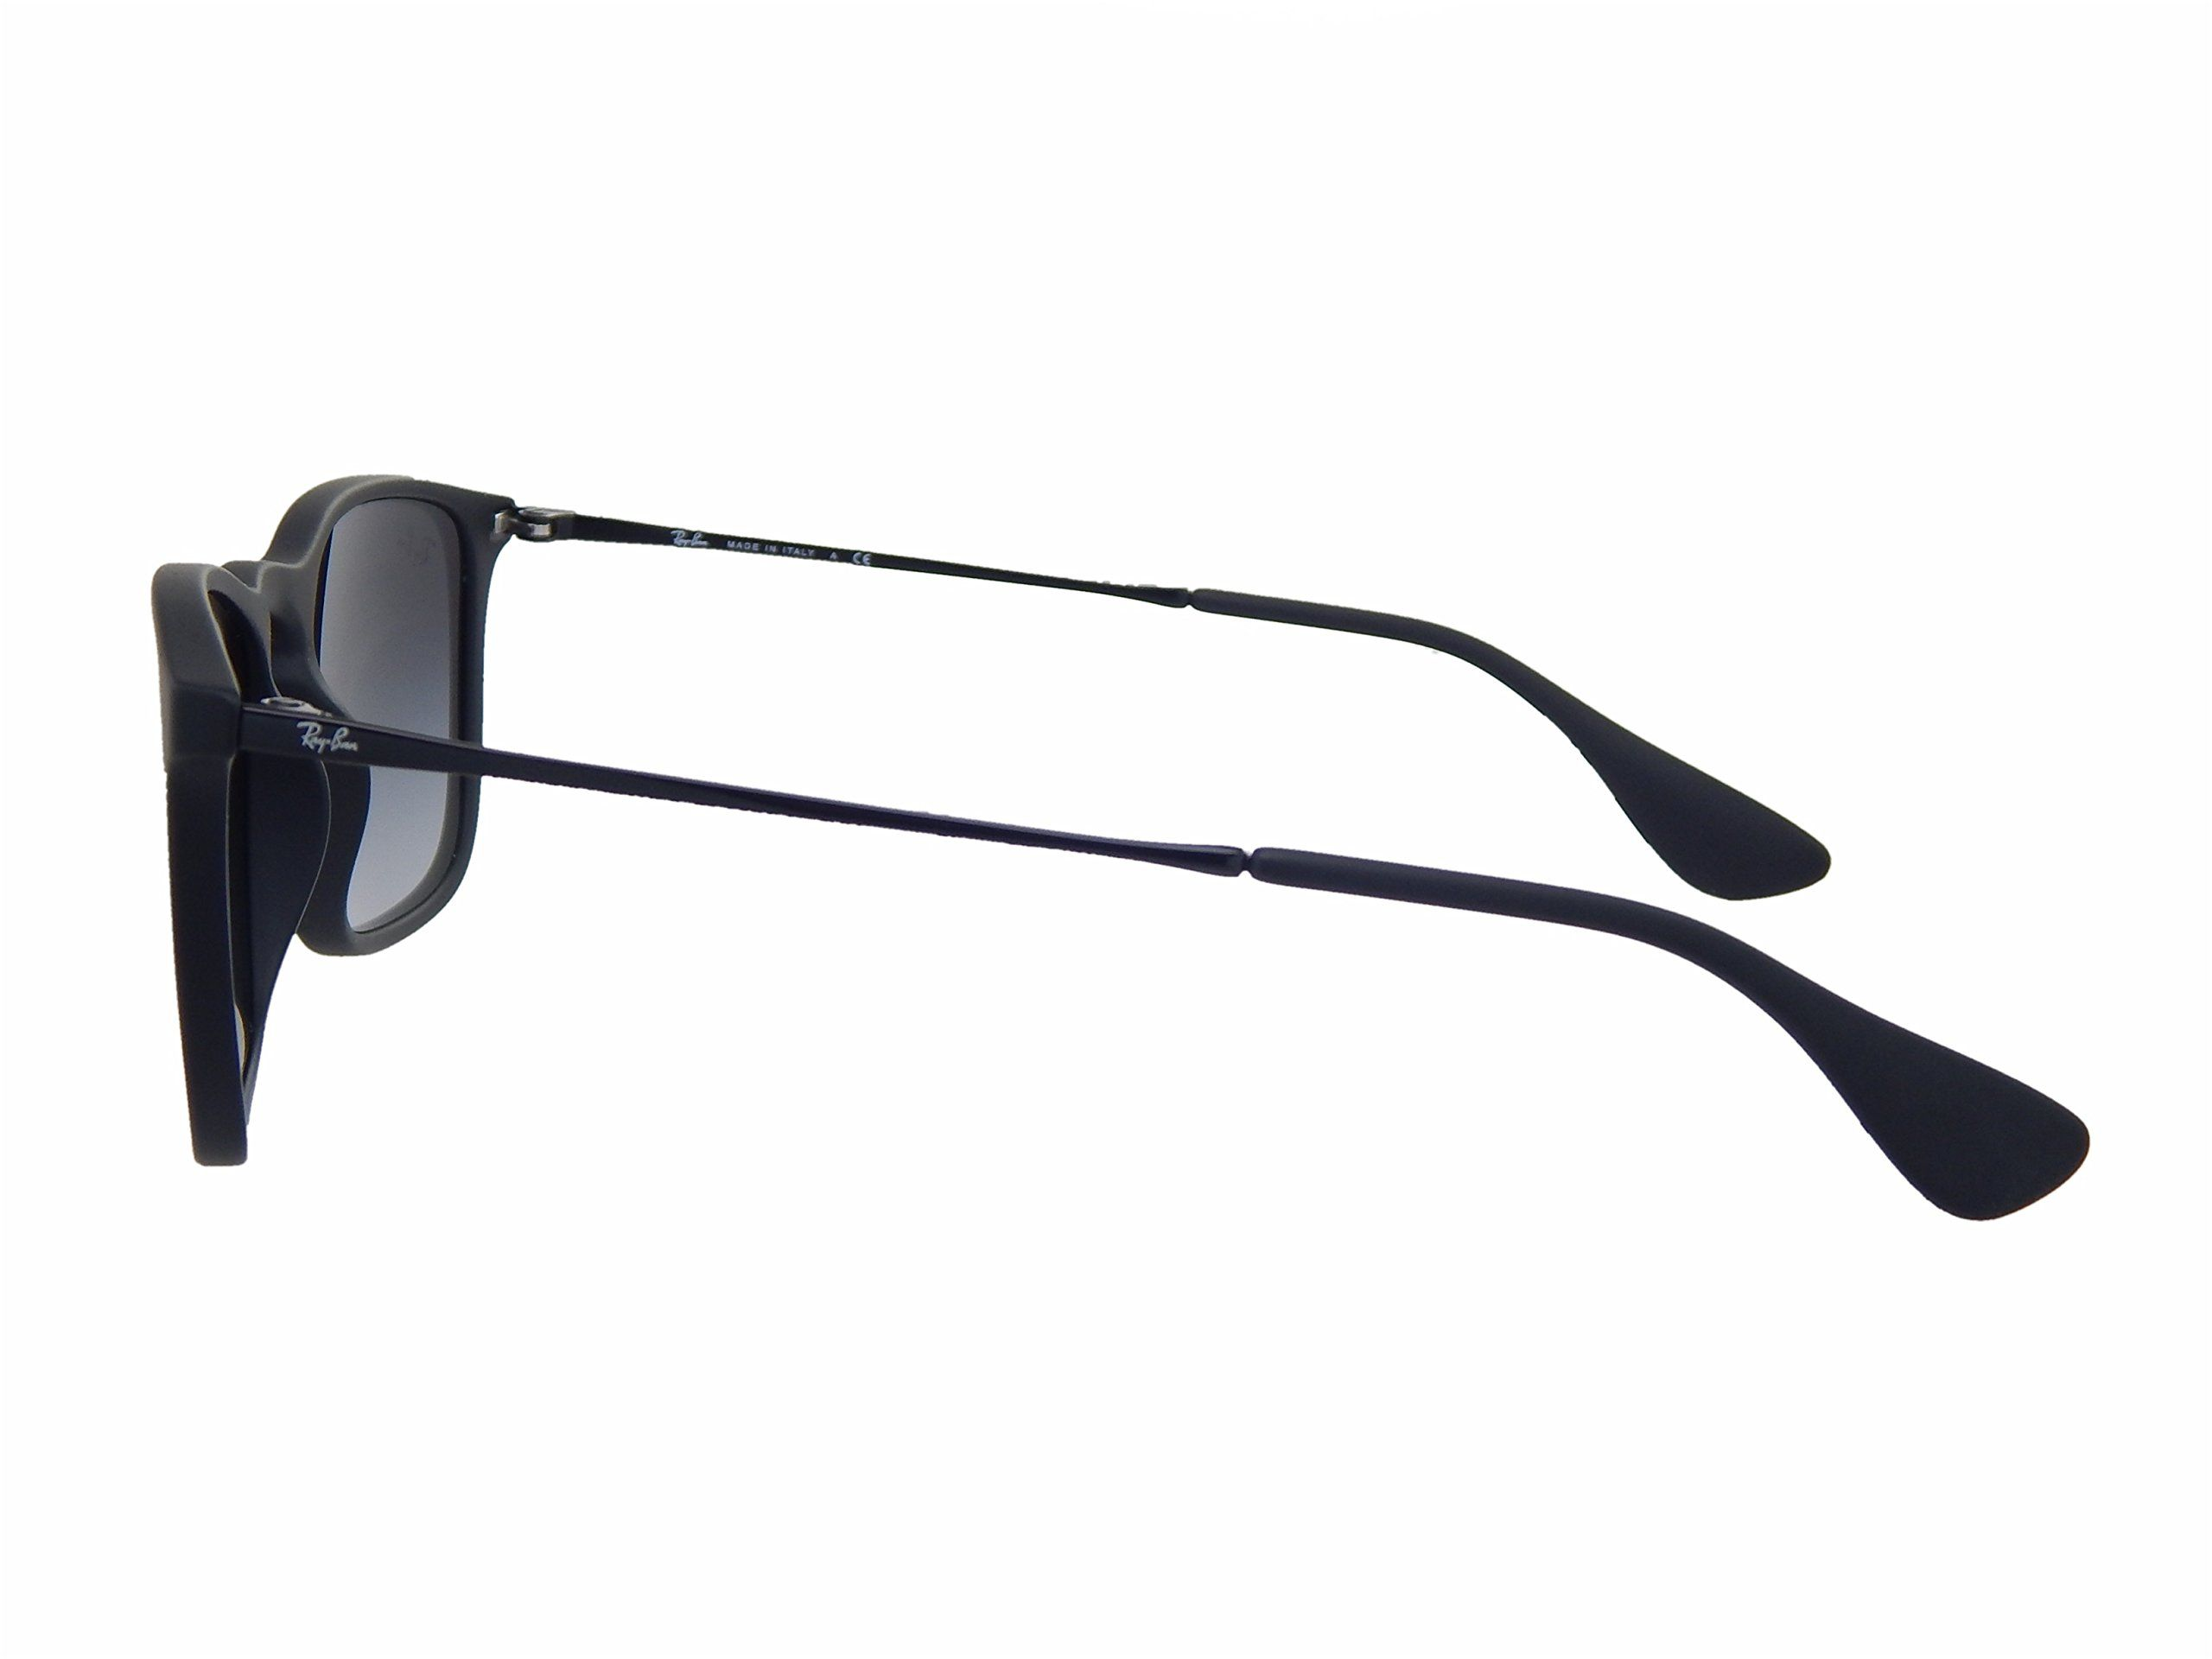 New Ray Ban Chris Rb4187 622 8g Black Grey Gradient 54mm Sunglasses You Can Find More Details By Visiting The Image Sunglasses Ray Bans Square Sunglasses